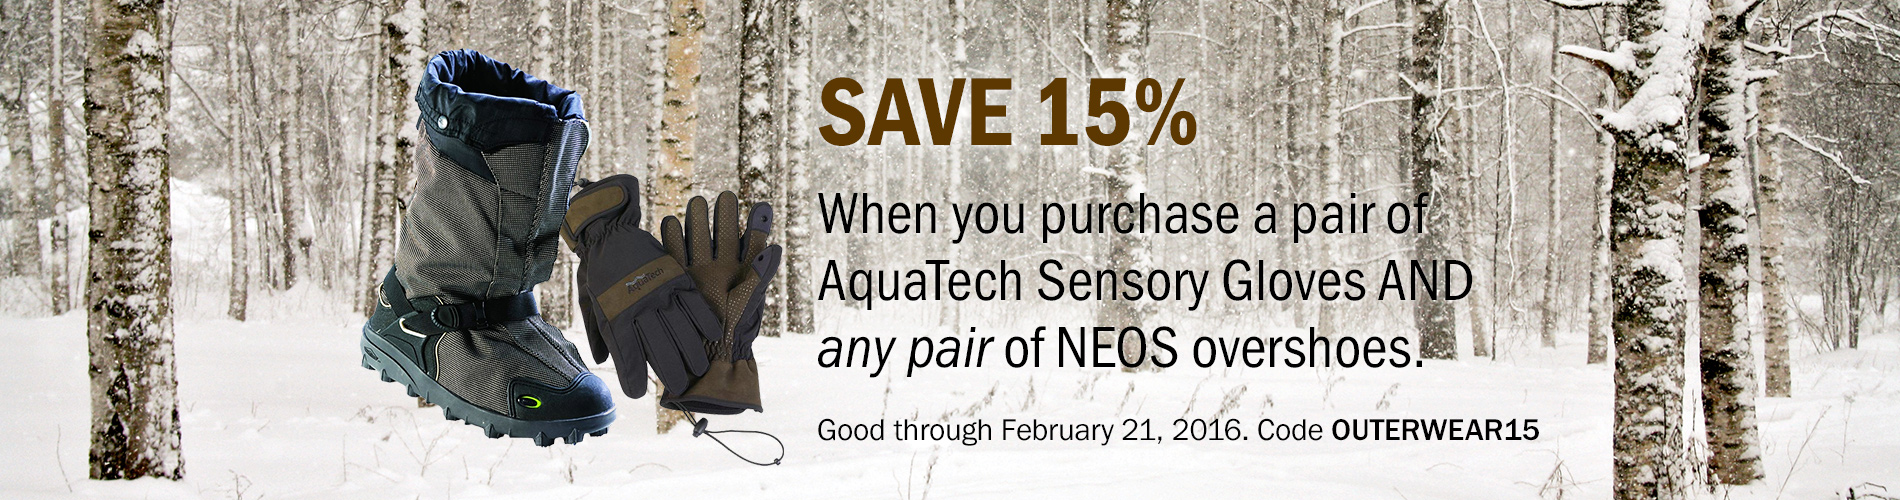 Save 15% when you purchase a pair of AquaTech Sensory Gloves AND any pair of NEOS overshoes. Good through February 21, 2016. Code OUTERWEAR15.